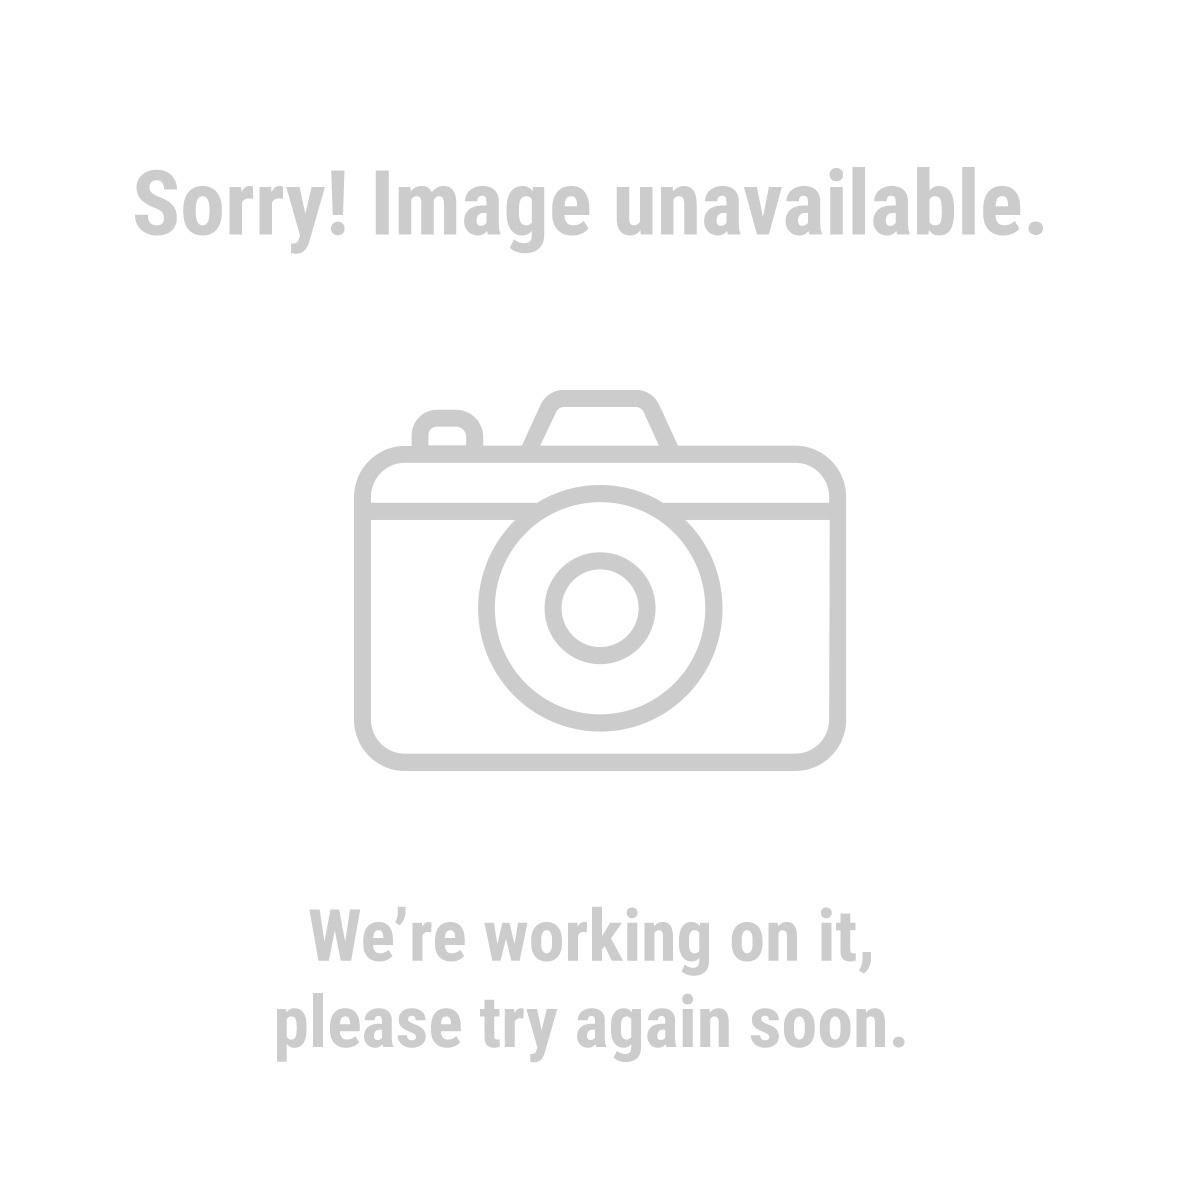 "H-M 35459 10"" x 2-1/2"" Solid Rubber Tire"